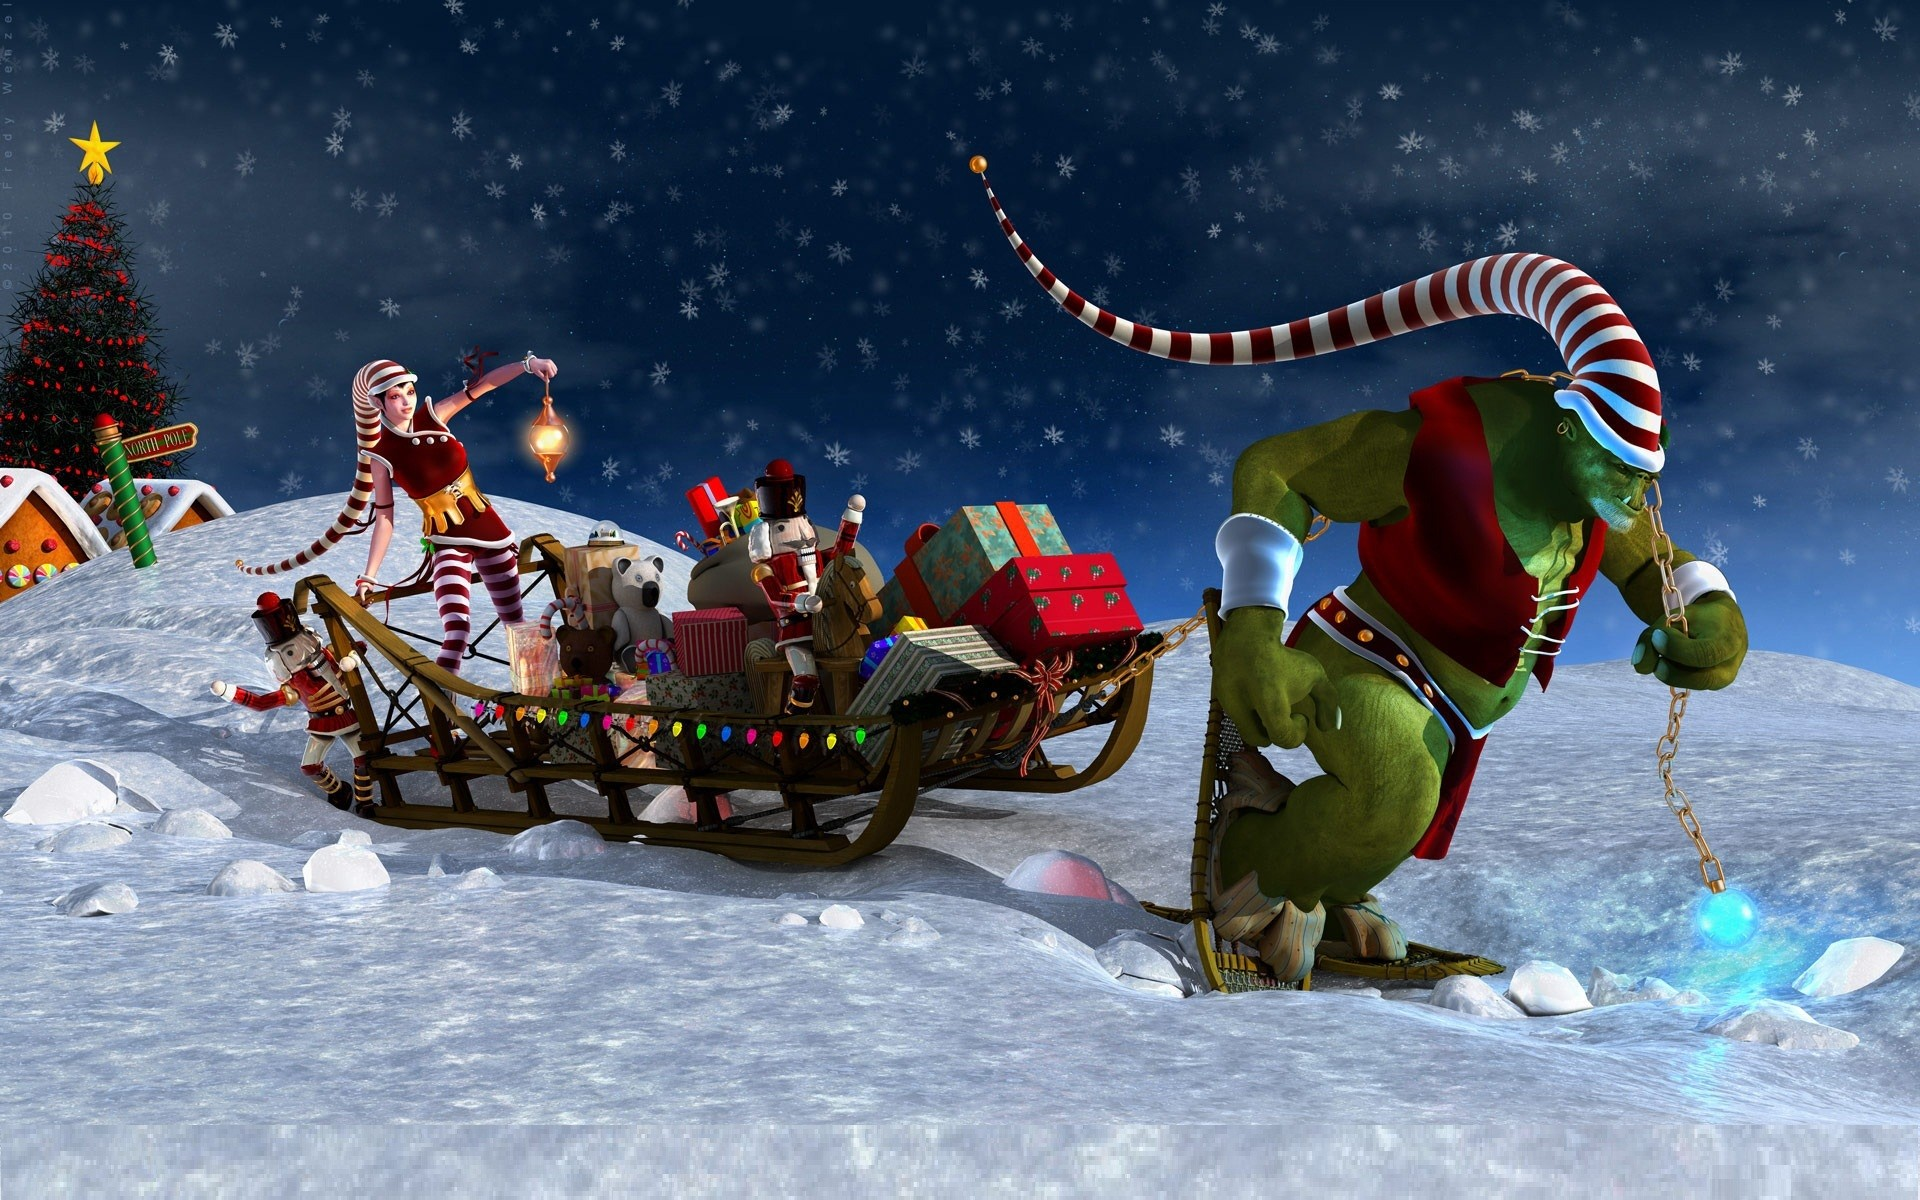 1920x1200 Animated Christmas Pictures | free animated christmas wallpapers , wallpaper, desktop, backgrounds .